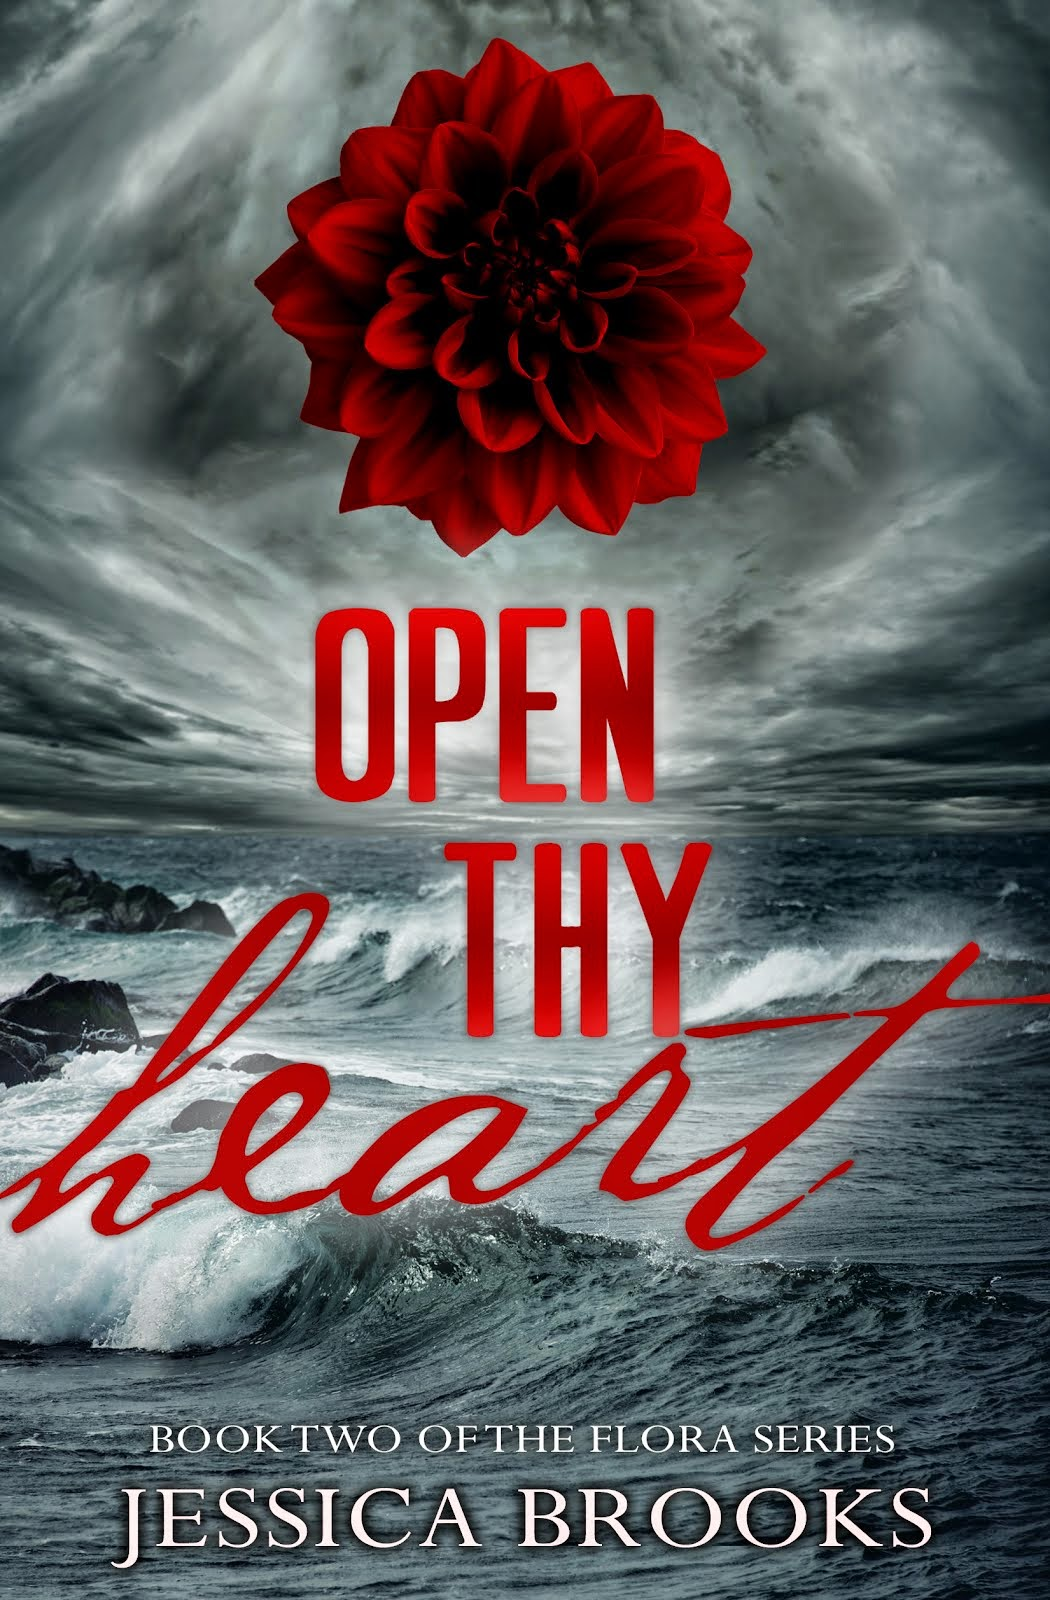 Open Thy Heart